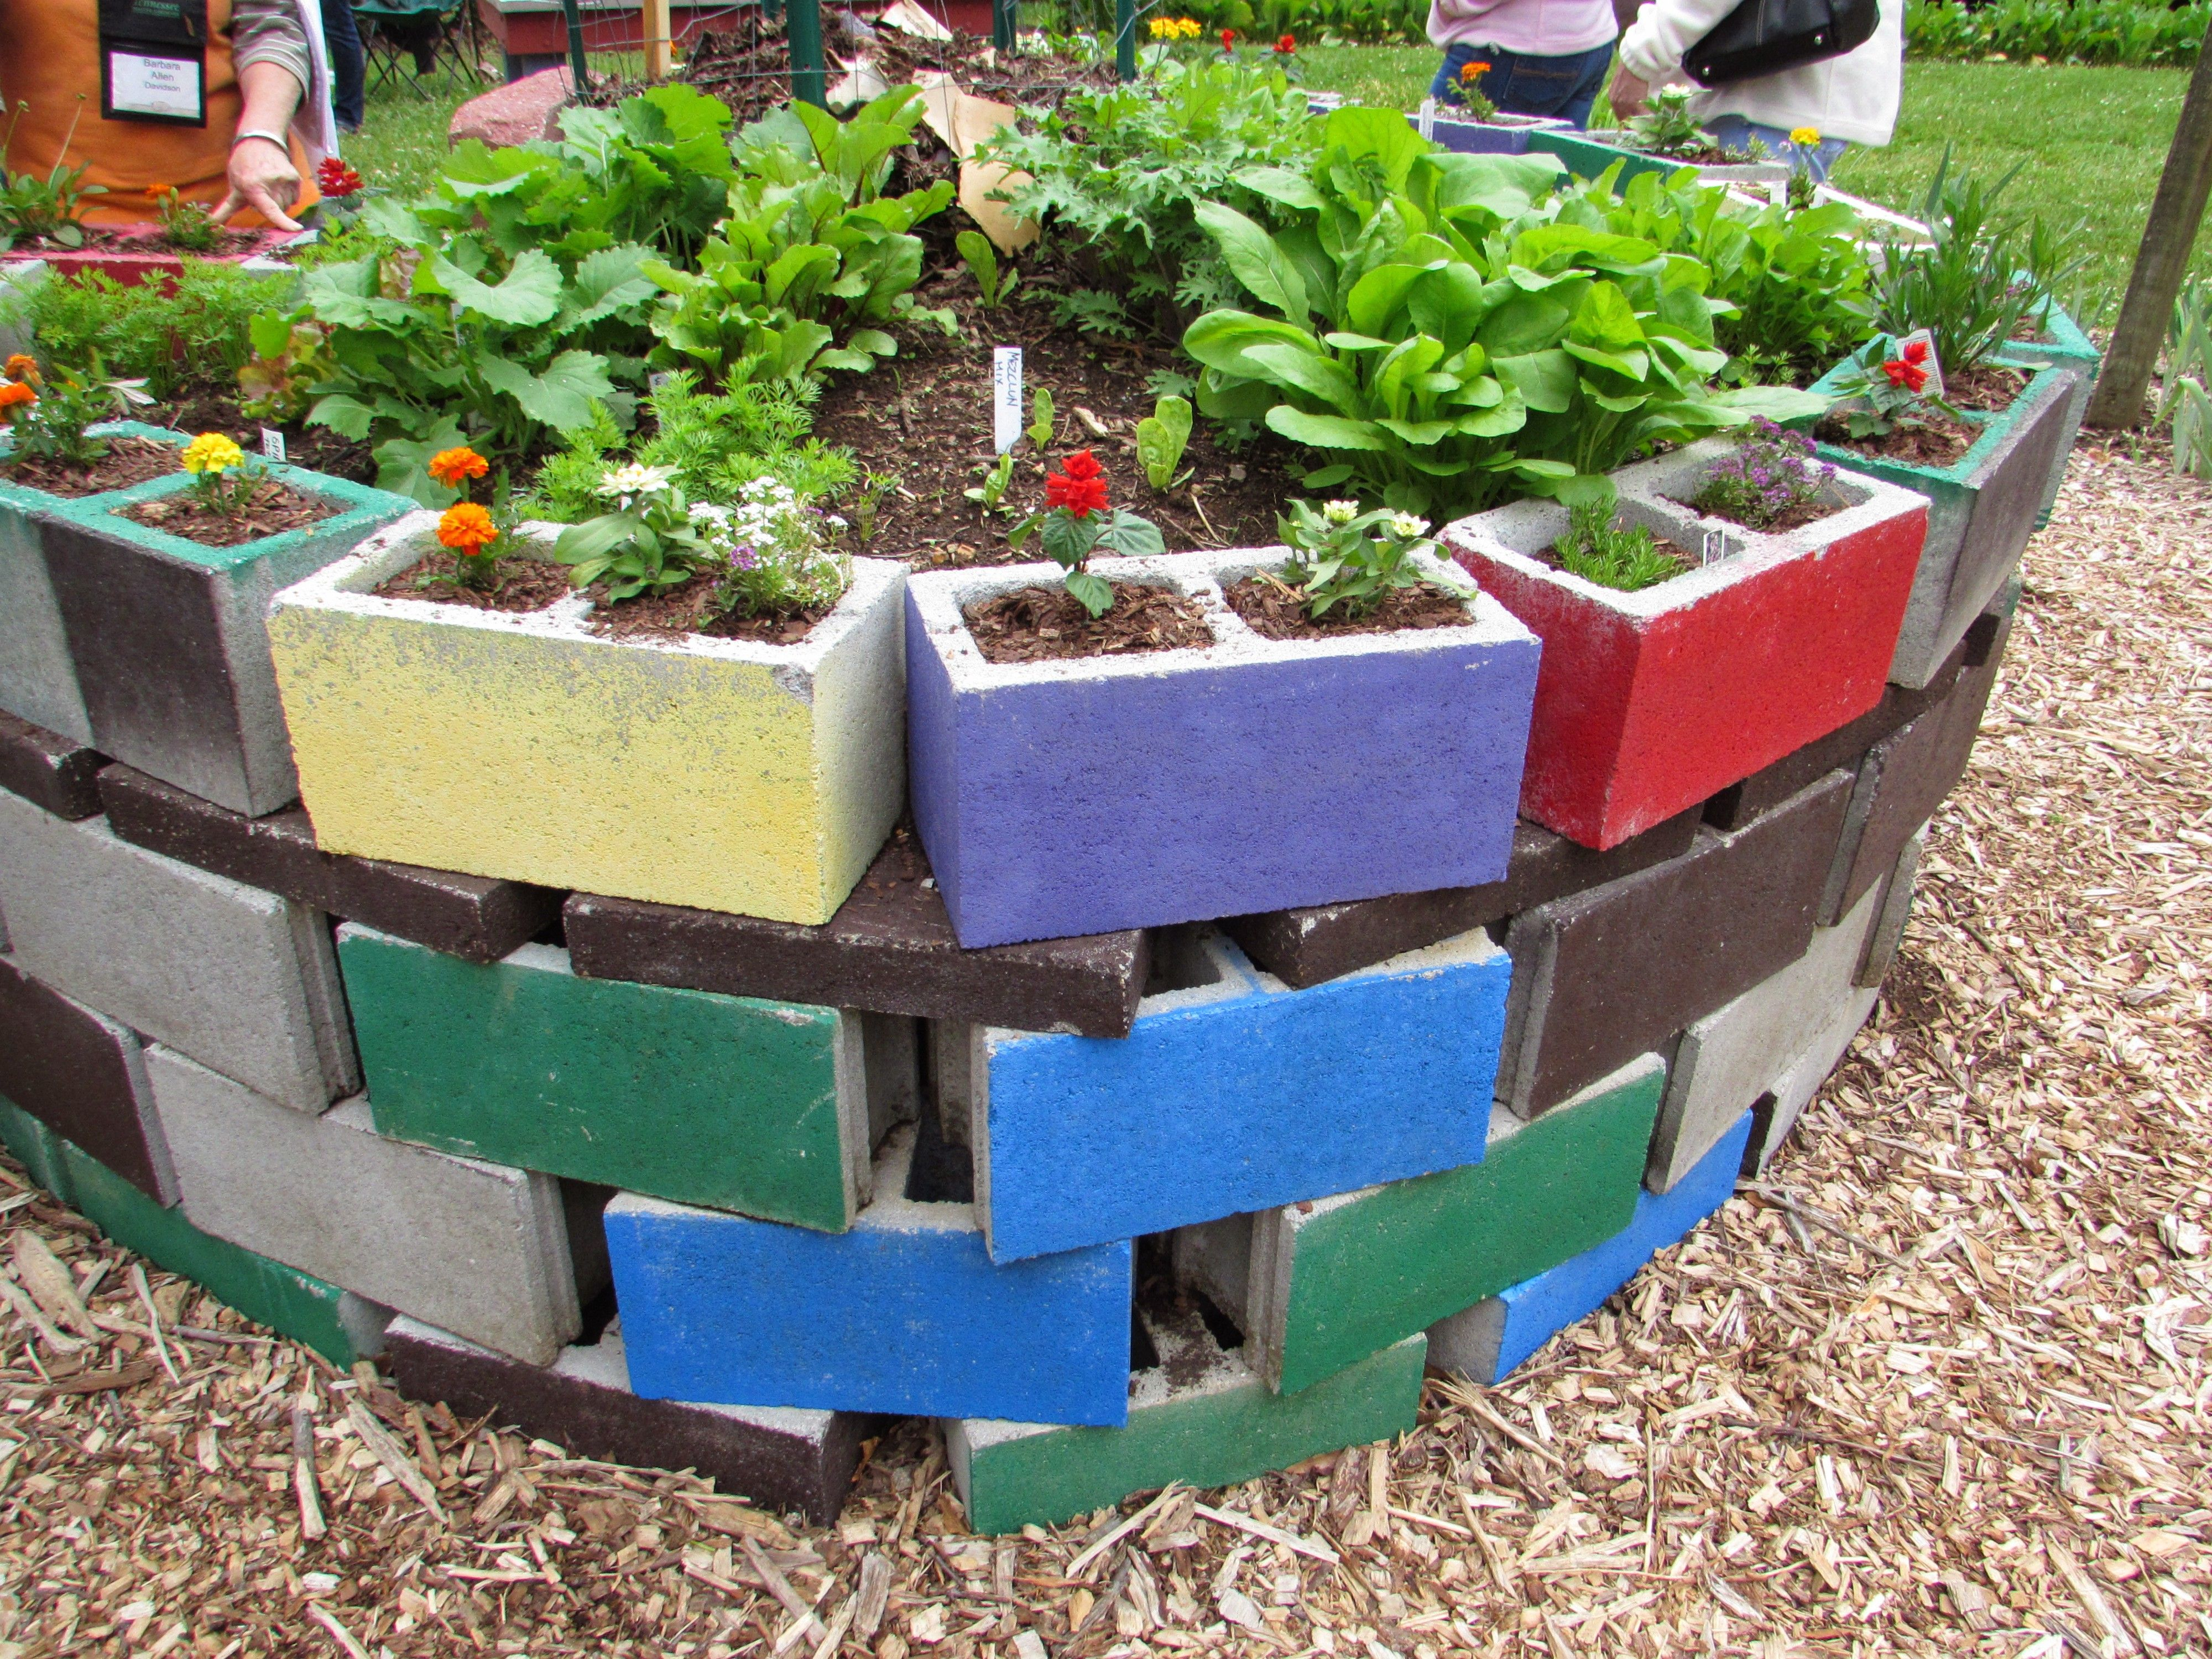 Captivating Many Types Of Gardens Were On Exhibit At The Urban Garden Festival, Which  Was Held